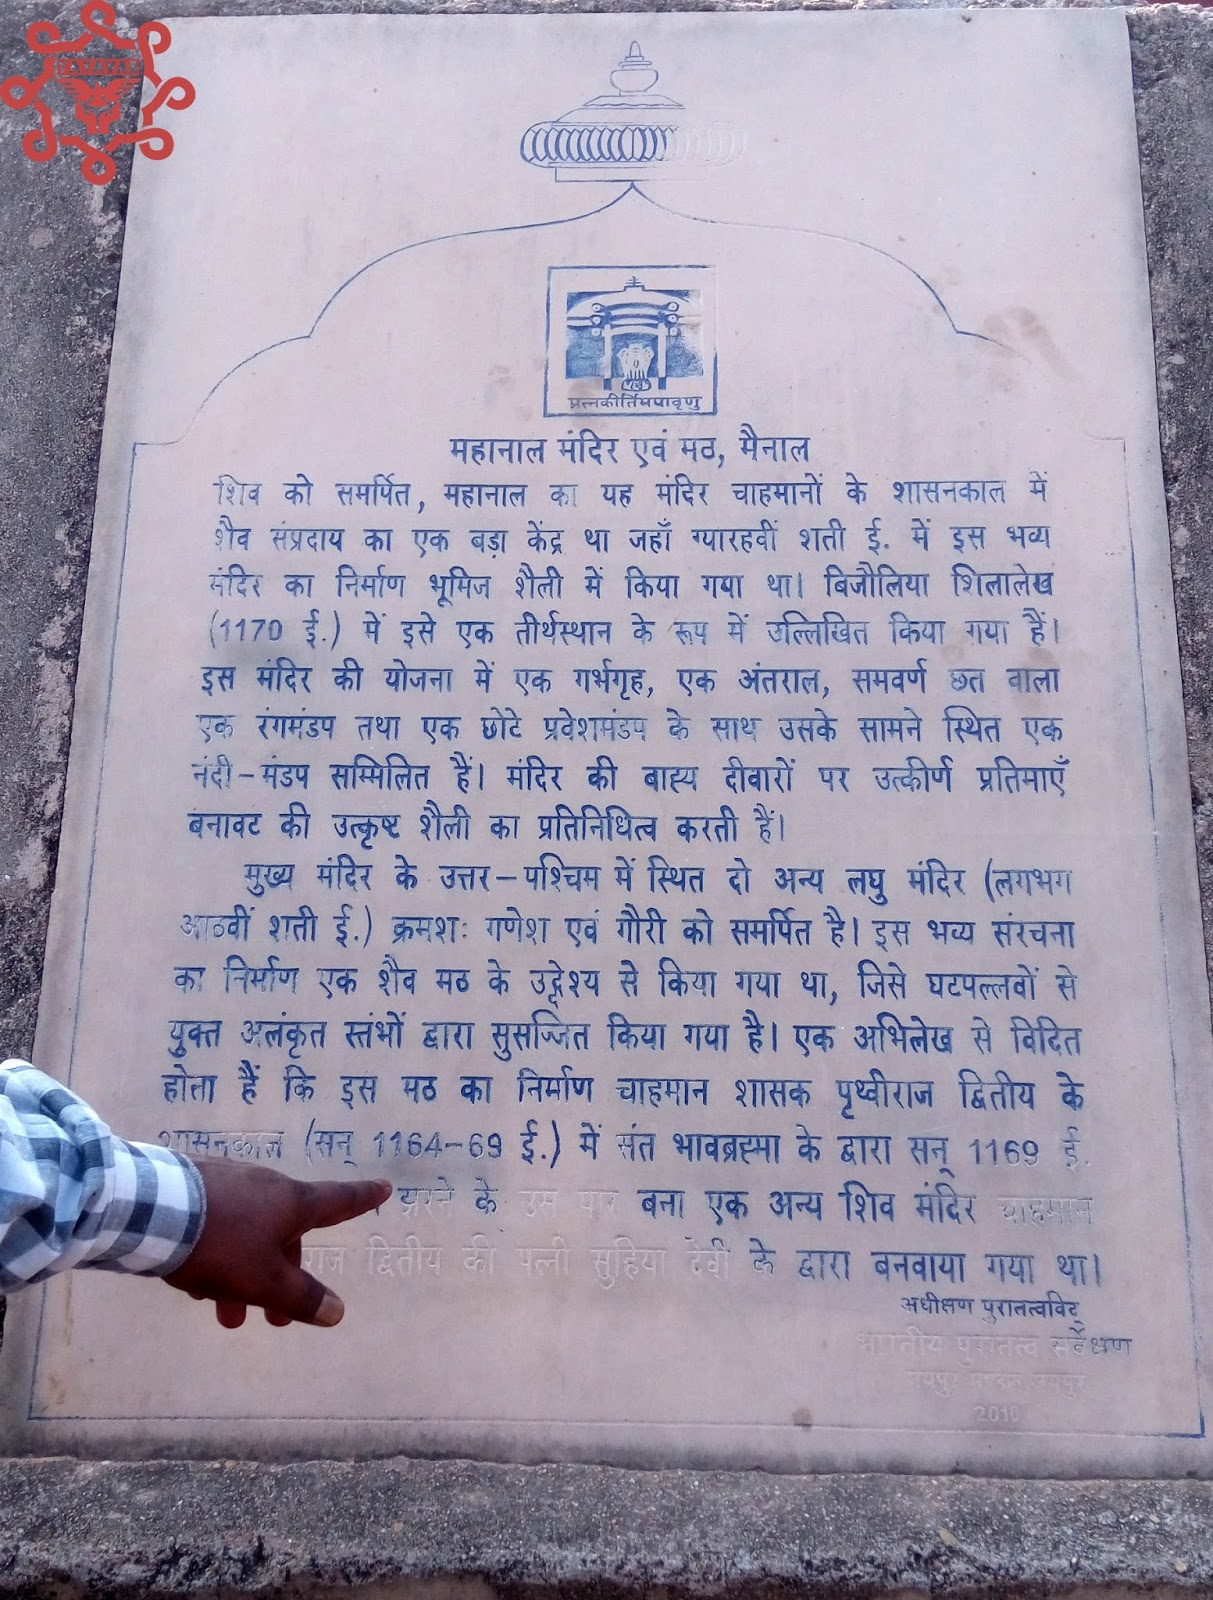 Inscription about Mahanal temple and Monastery